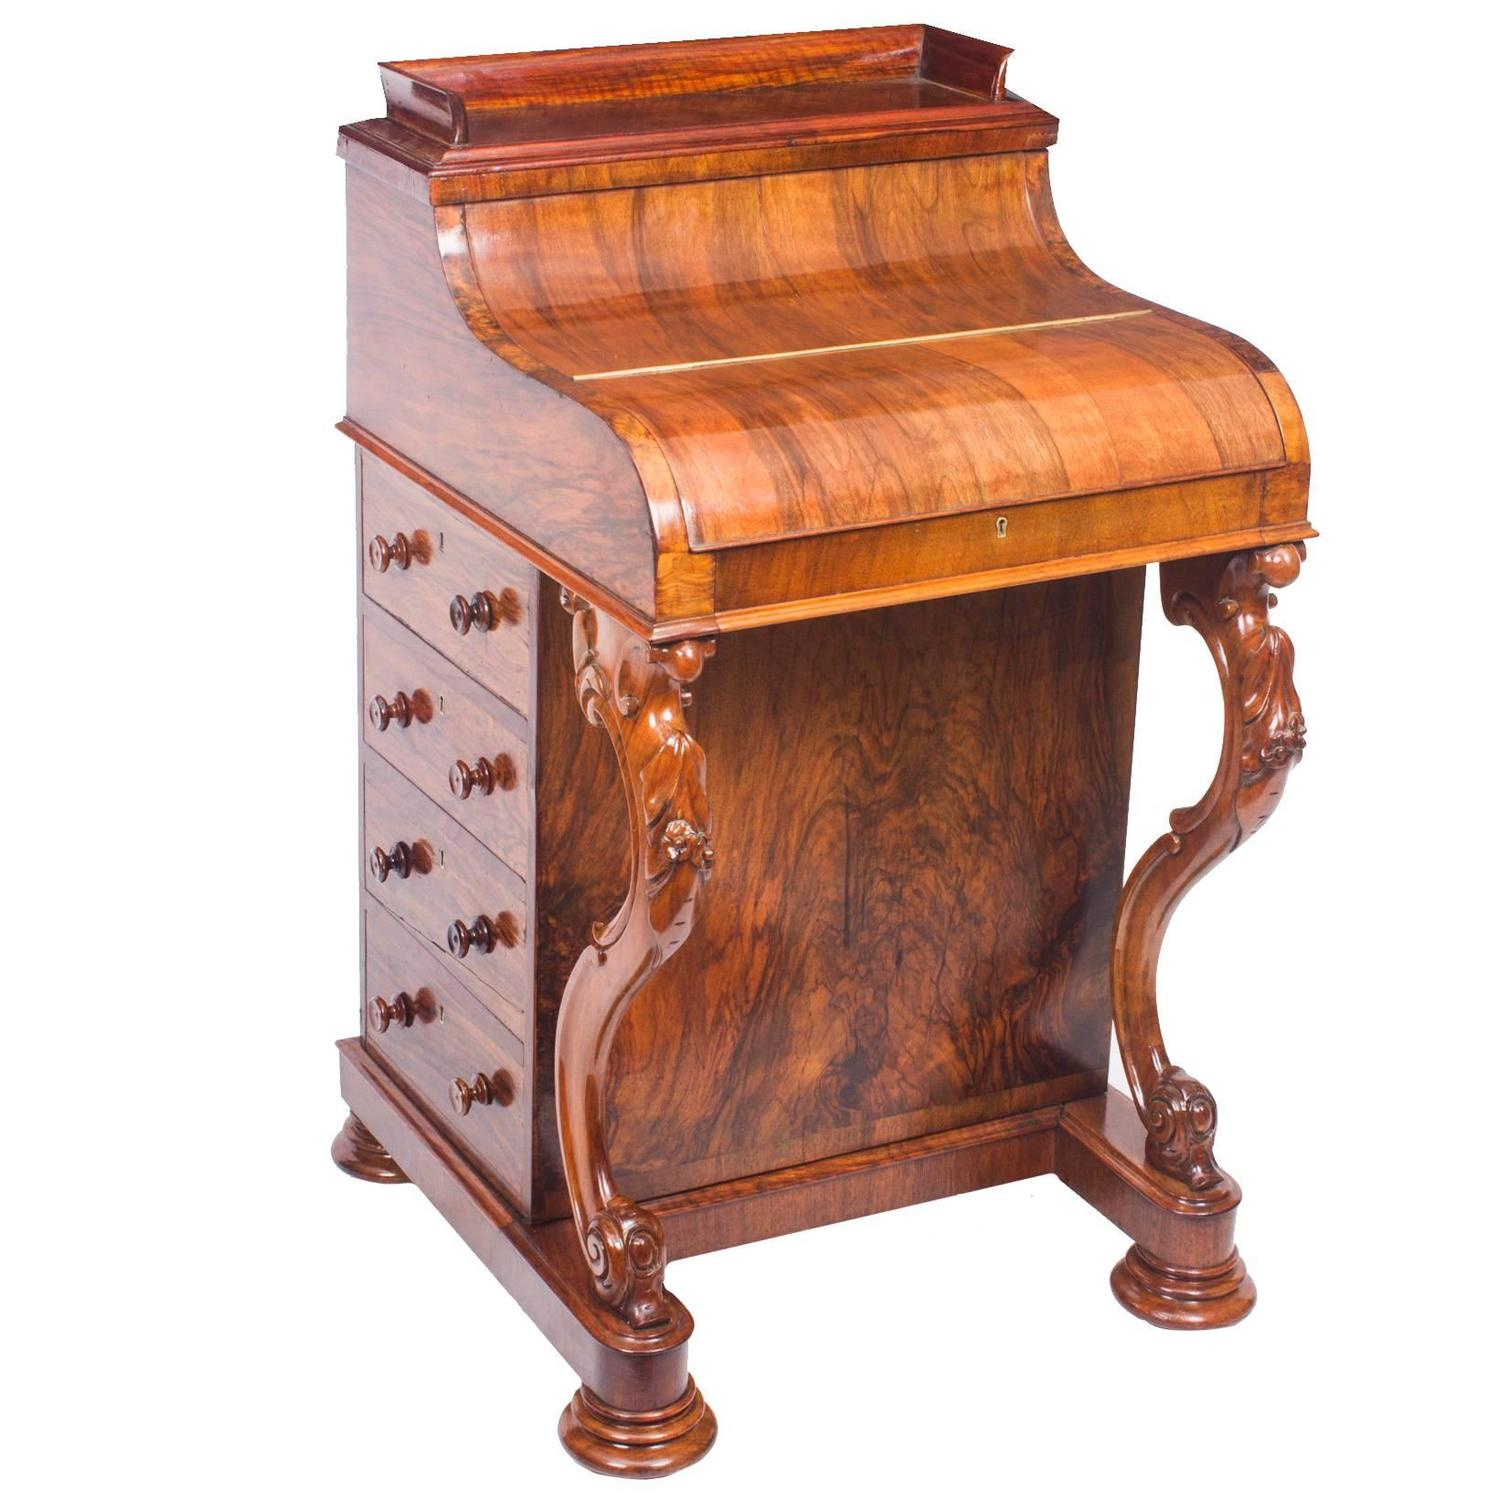 Antique Burr Walnut Pop Up Davenport Desk, circa 1860 For Sale at 1stdibs - Antique Burr Walnut Pop Up Davenport Desk, Circa 1860 For Sale At